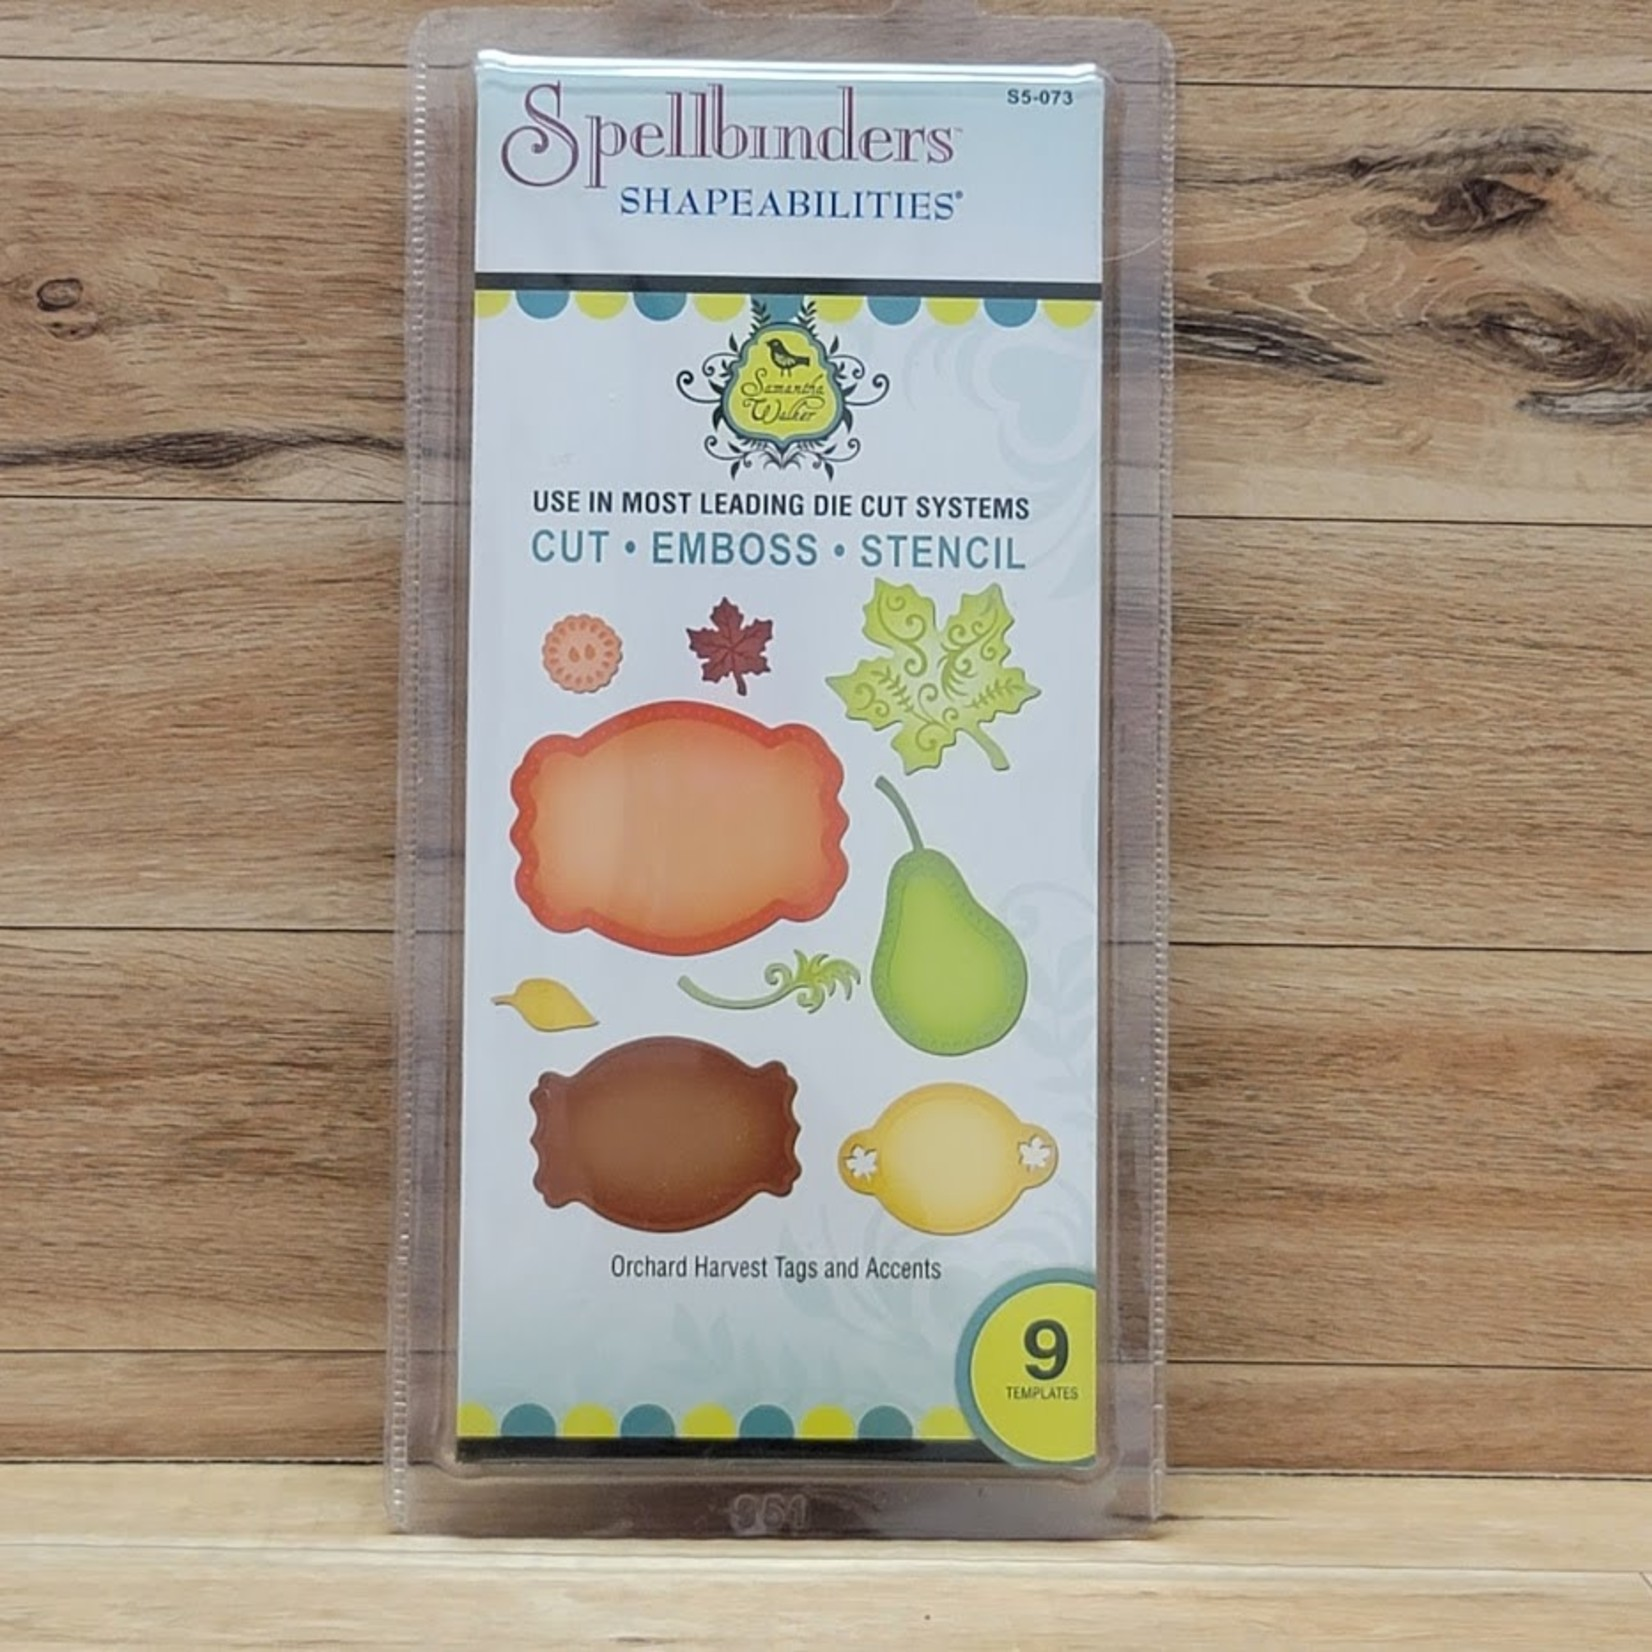 Spellbinders Spellbinders - Shapeabilities - Orchard Harvest Tages and Accents